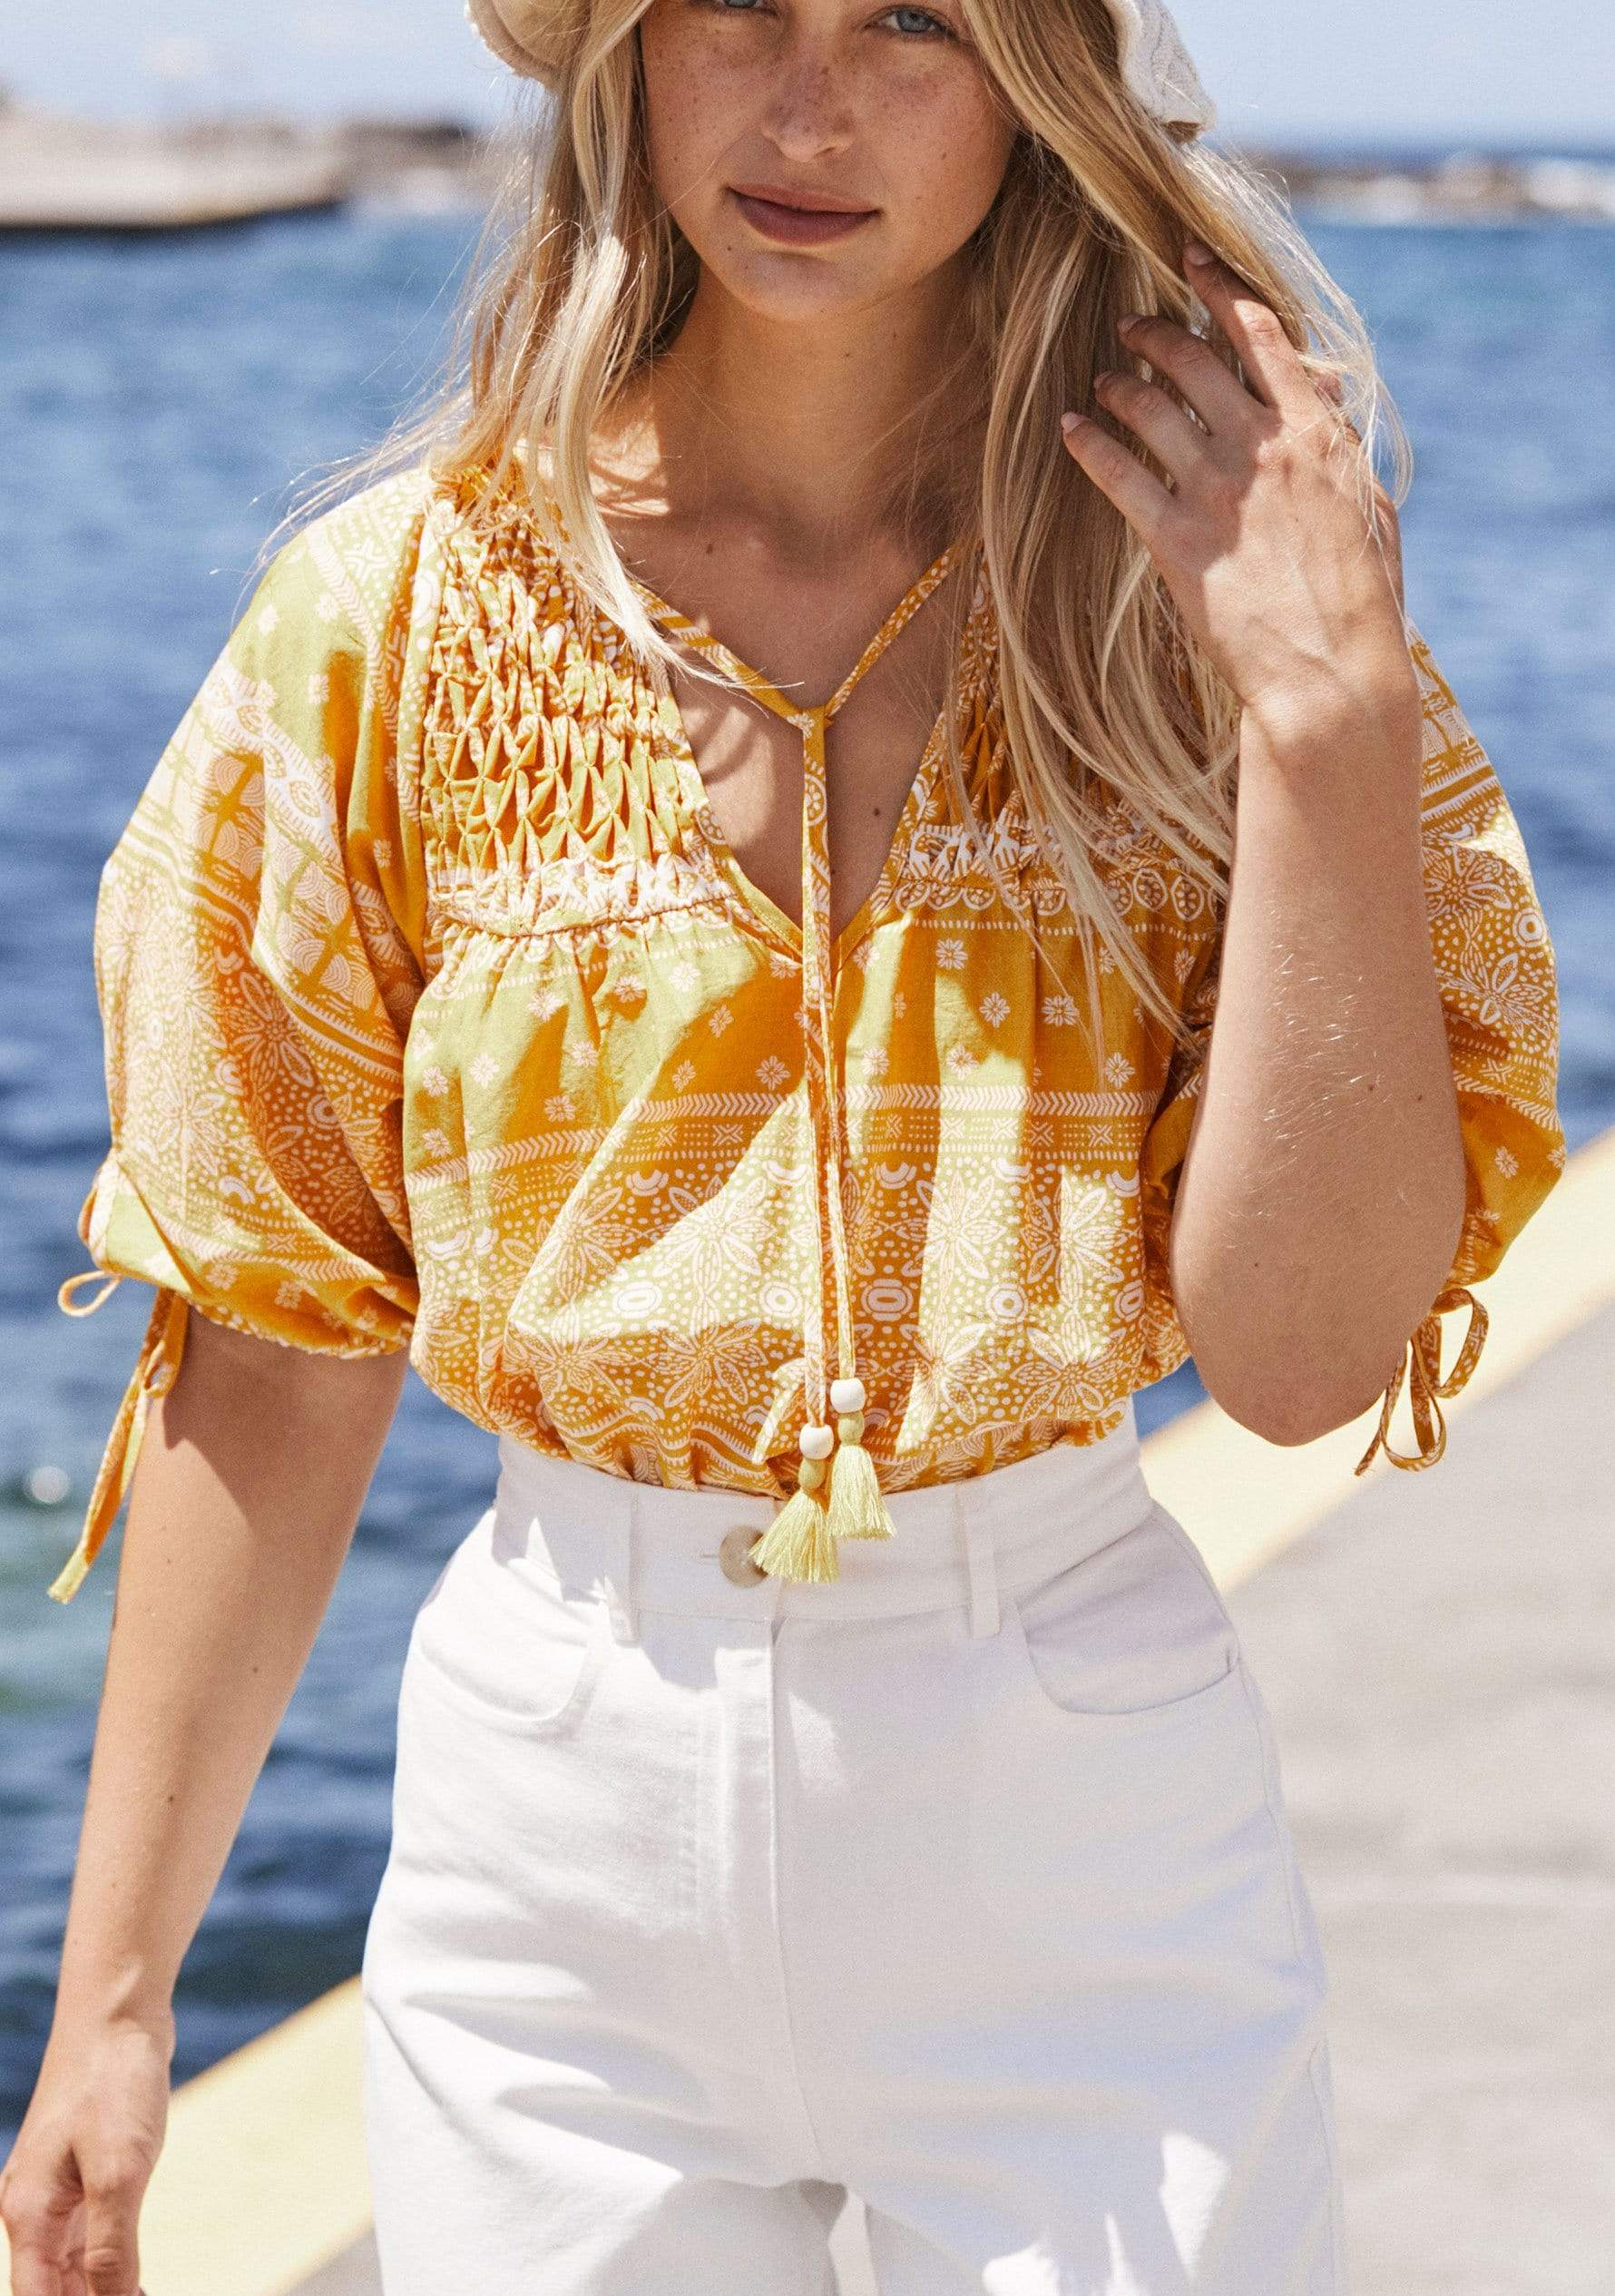 Enzo Scott Blouse Yellow AUD$119 @ Auguste